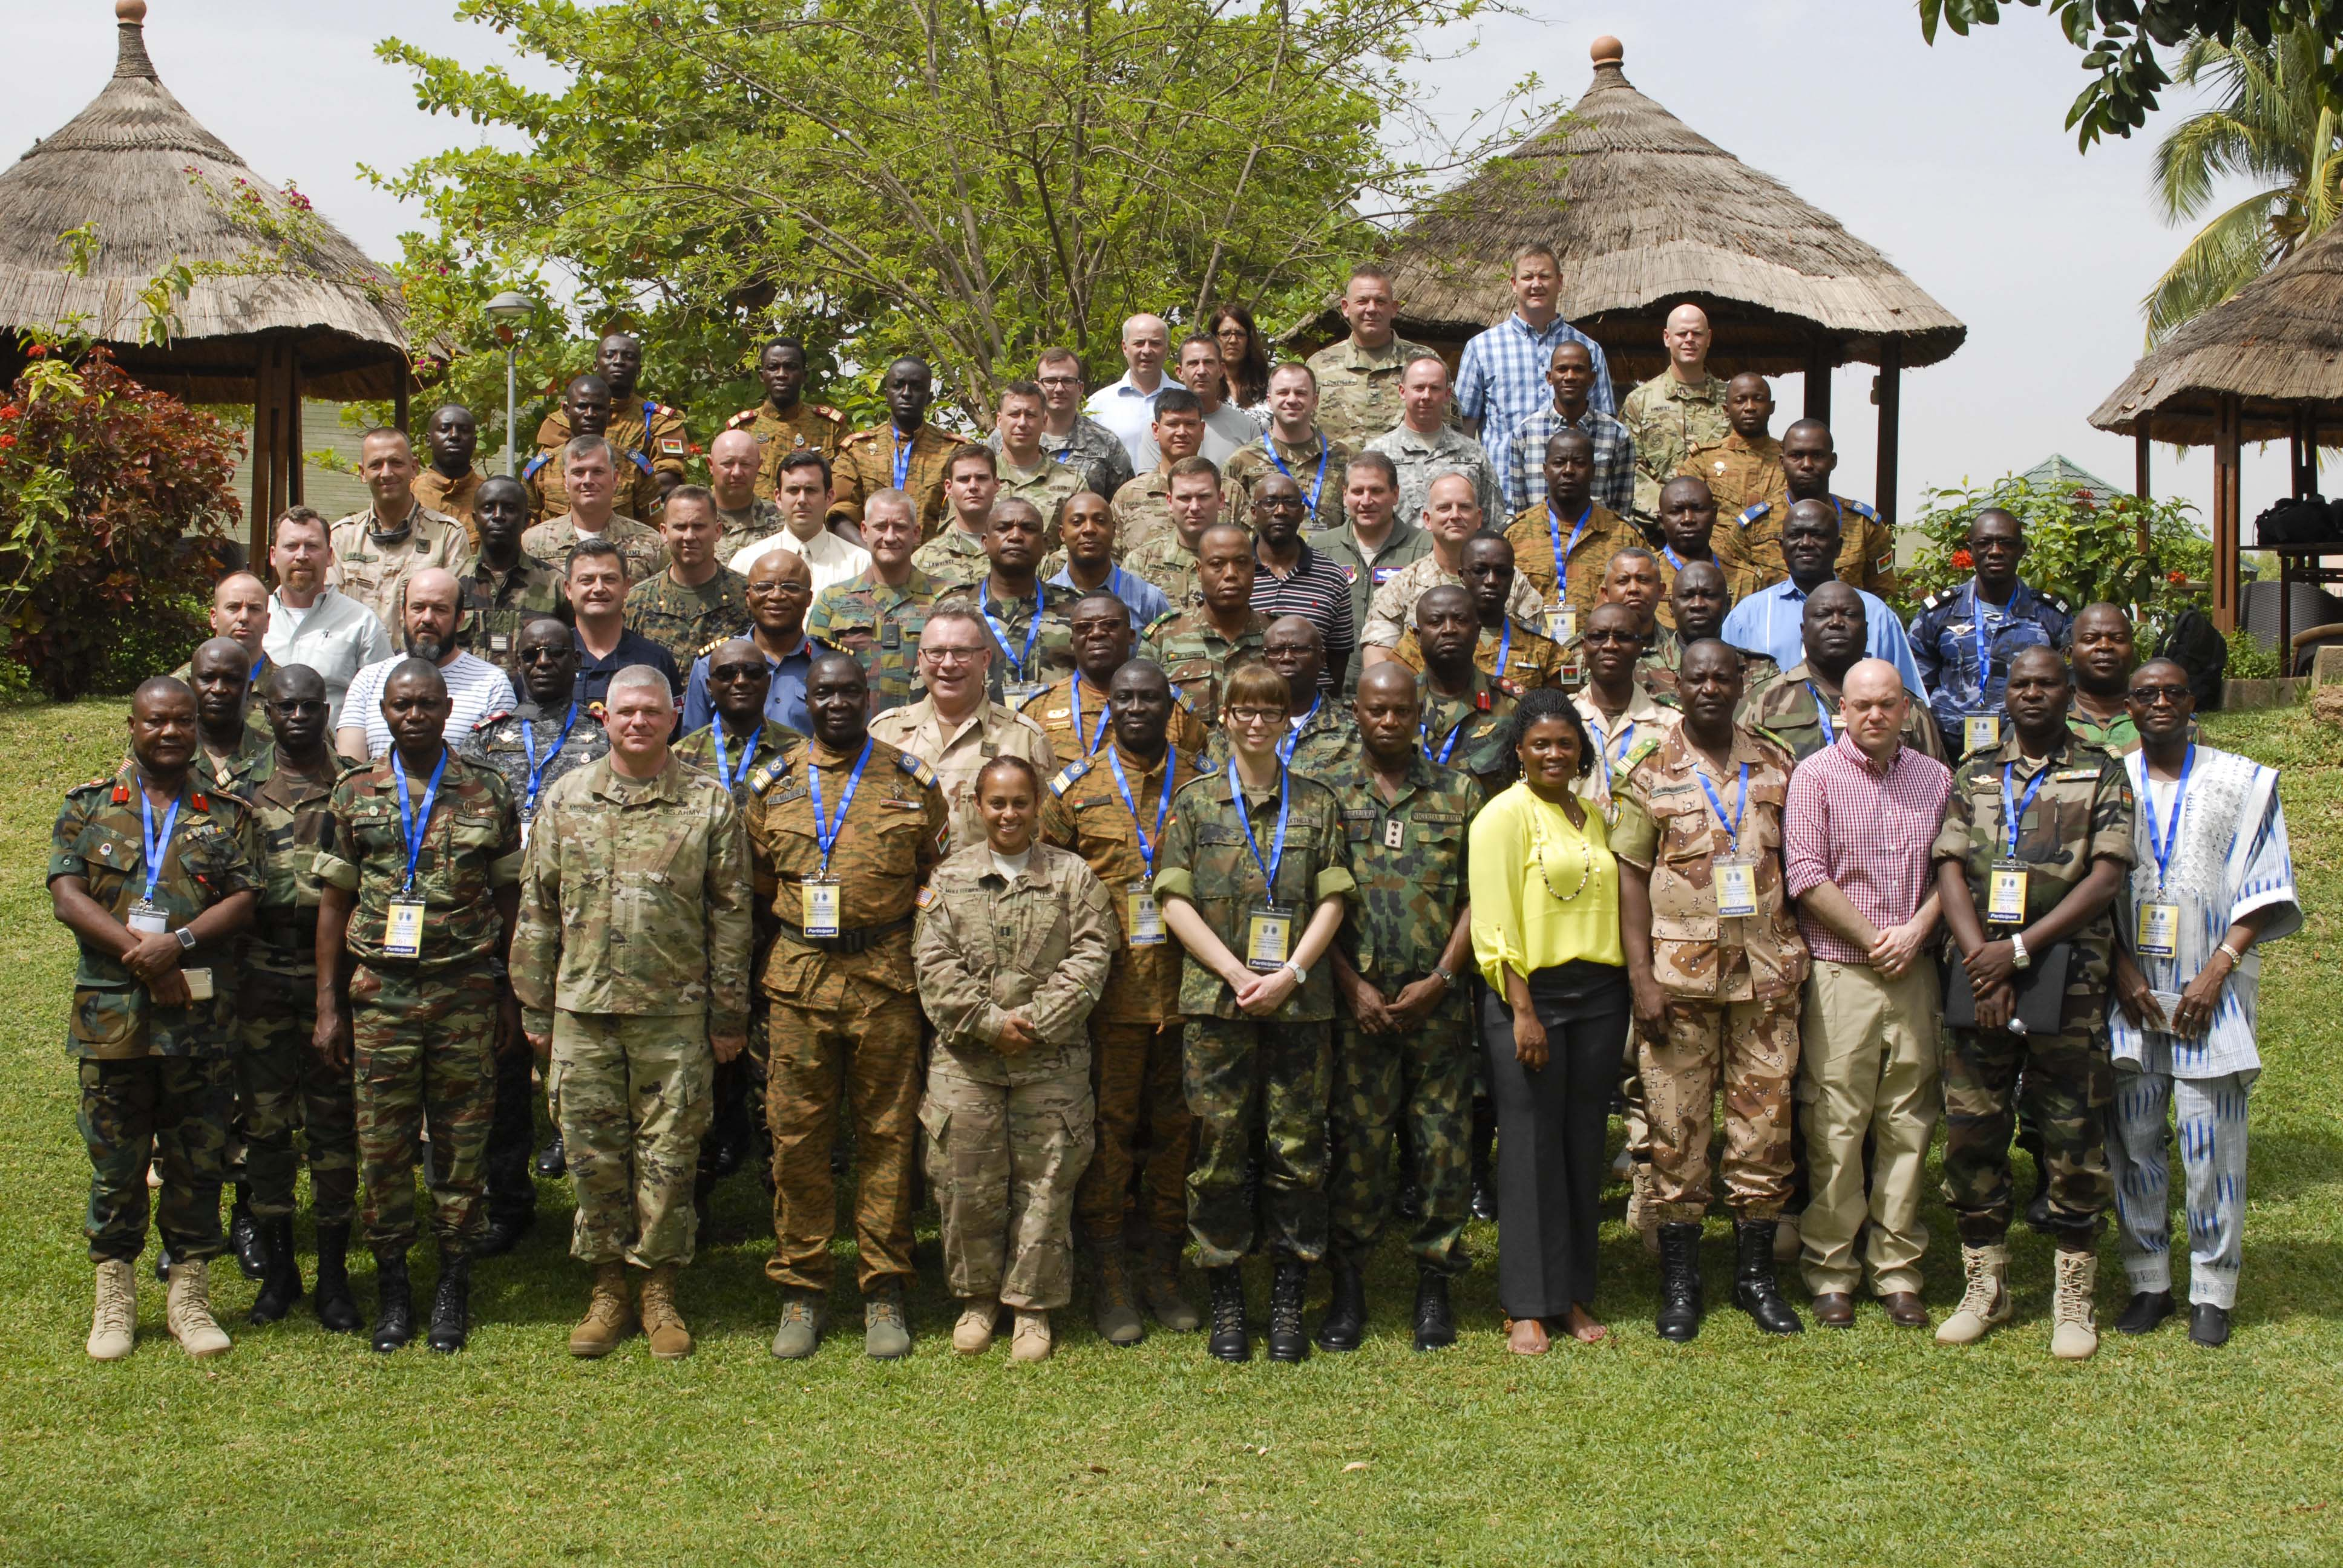 Military Representatives from various African and European countries met for the Western Accord 2016 Final Planning Event in Ouagadougou, Burkina Faso March 21-25, finalized details for the upcoming May exercise. WA 2016 is a two-week exercise with regional African partners and their Western allies designed to strengthen partnerships, enhance capacity and capabilities to conduct joint multinational peacekeeping operations in West Africa. (U.S. Army Africa photo by Sgt. 1st Class Chris Bridson)